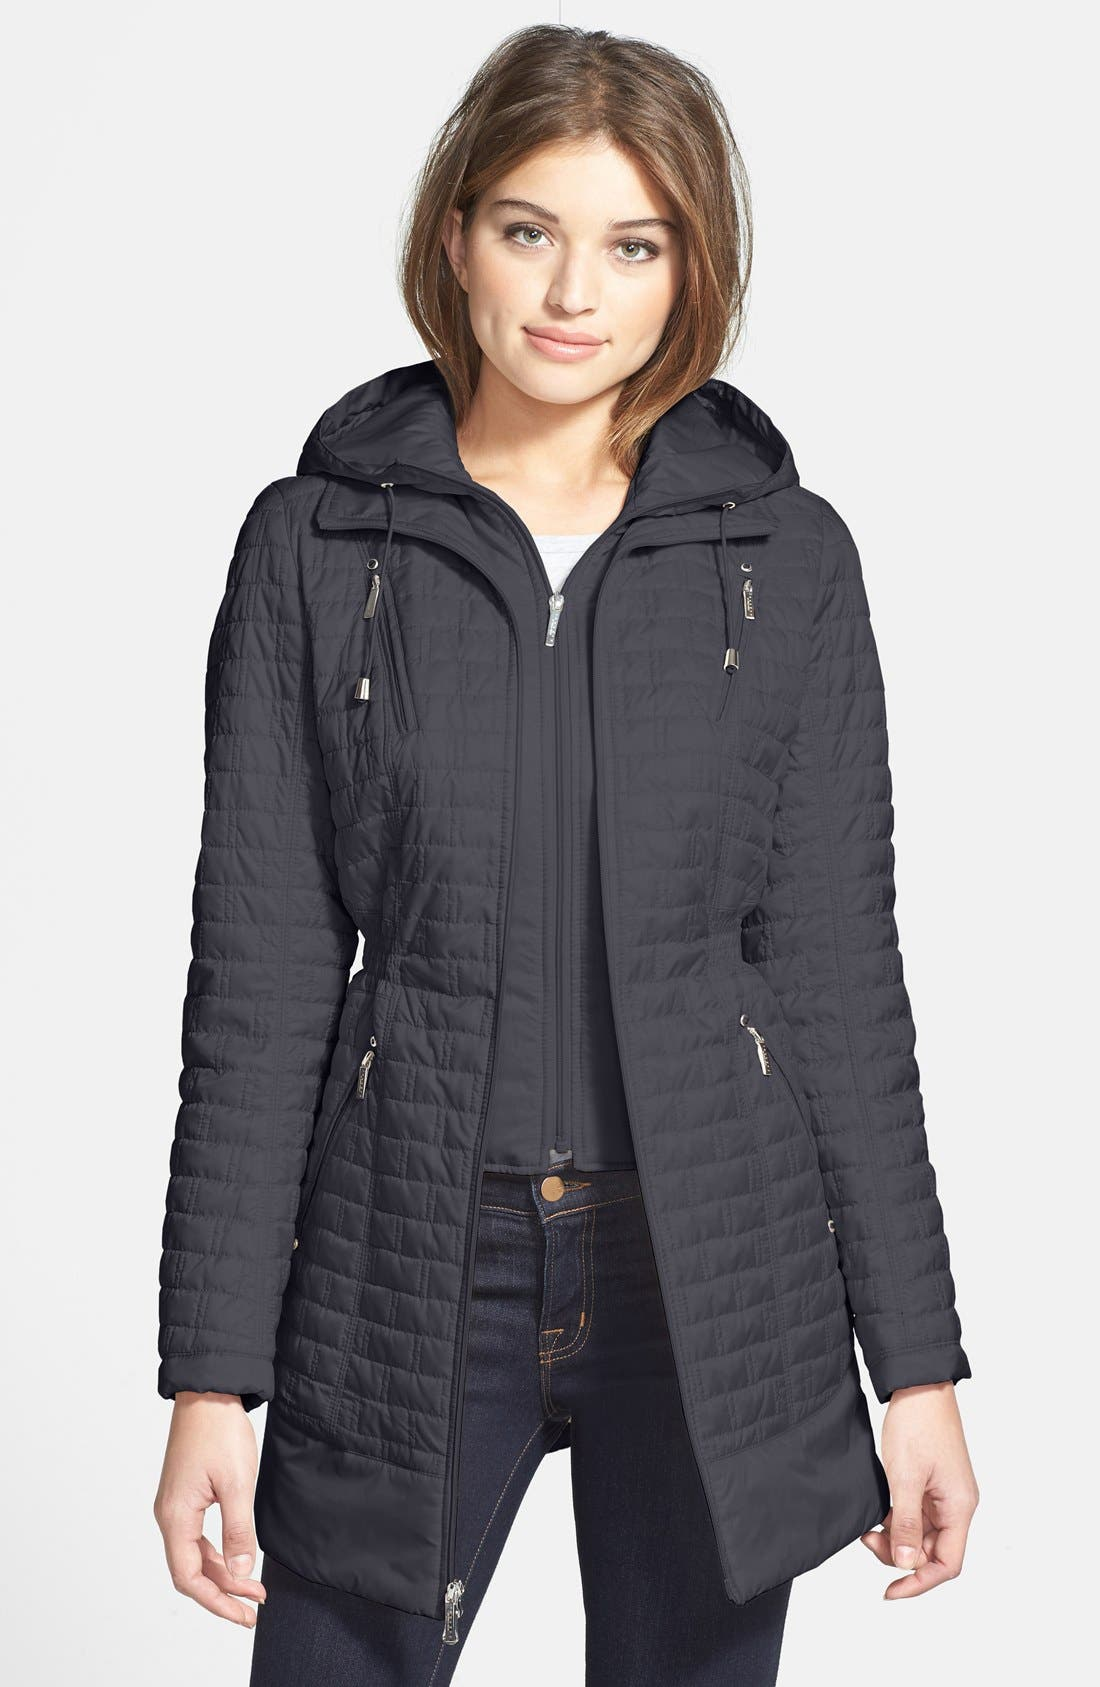 Alternate Image 1 Selected - Laundry by Shelli Segal Quilted Anorak with Detachable Hooded Vest Insert